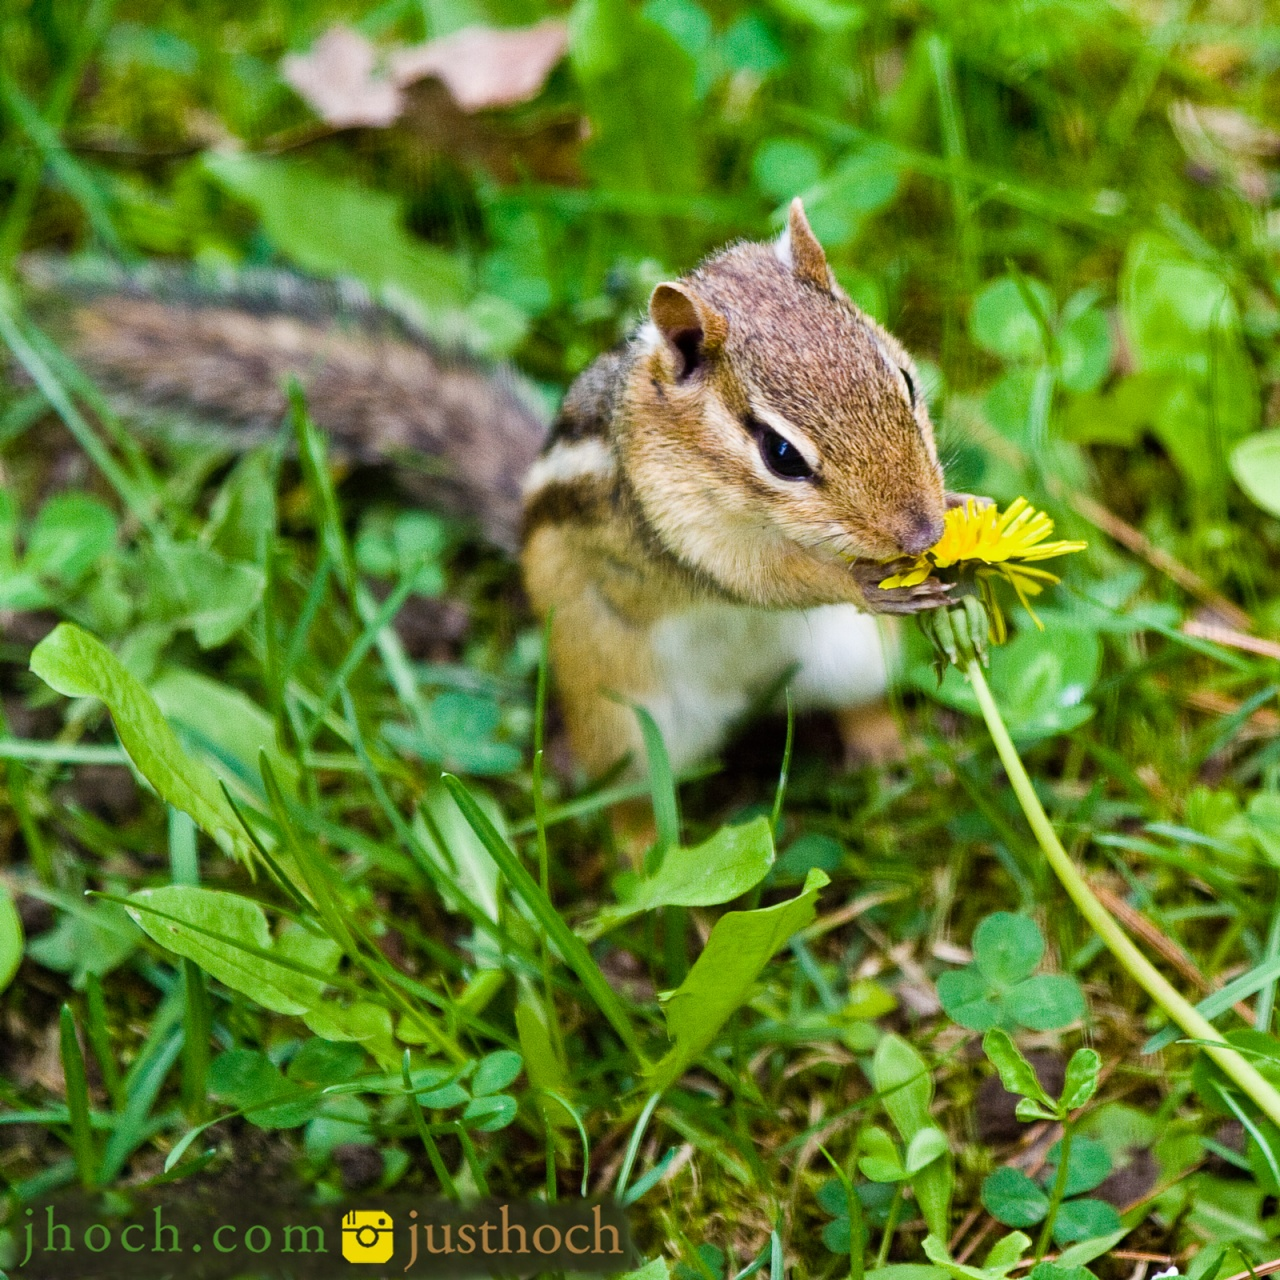 Stop and smell the...dandelions?